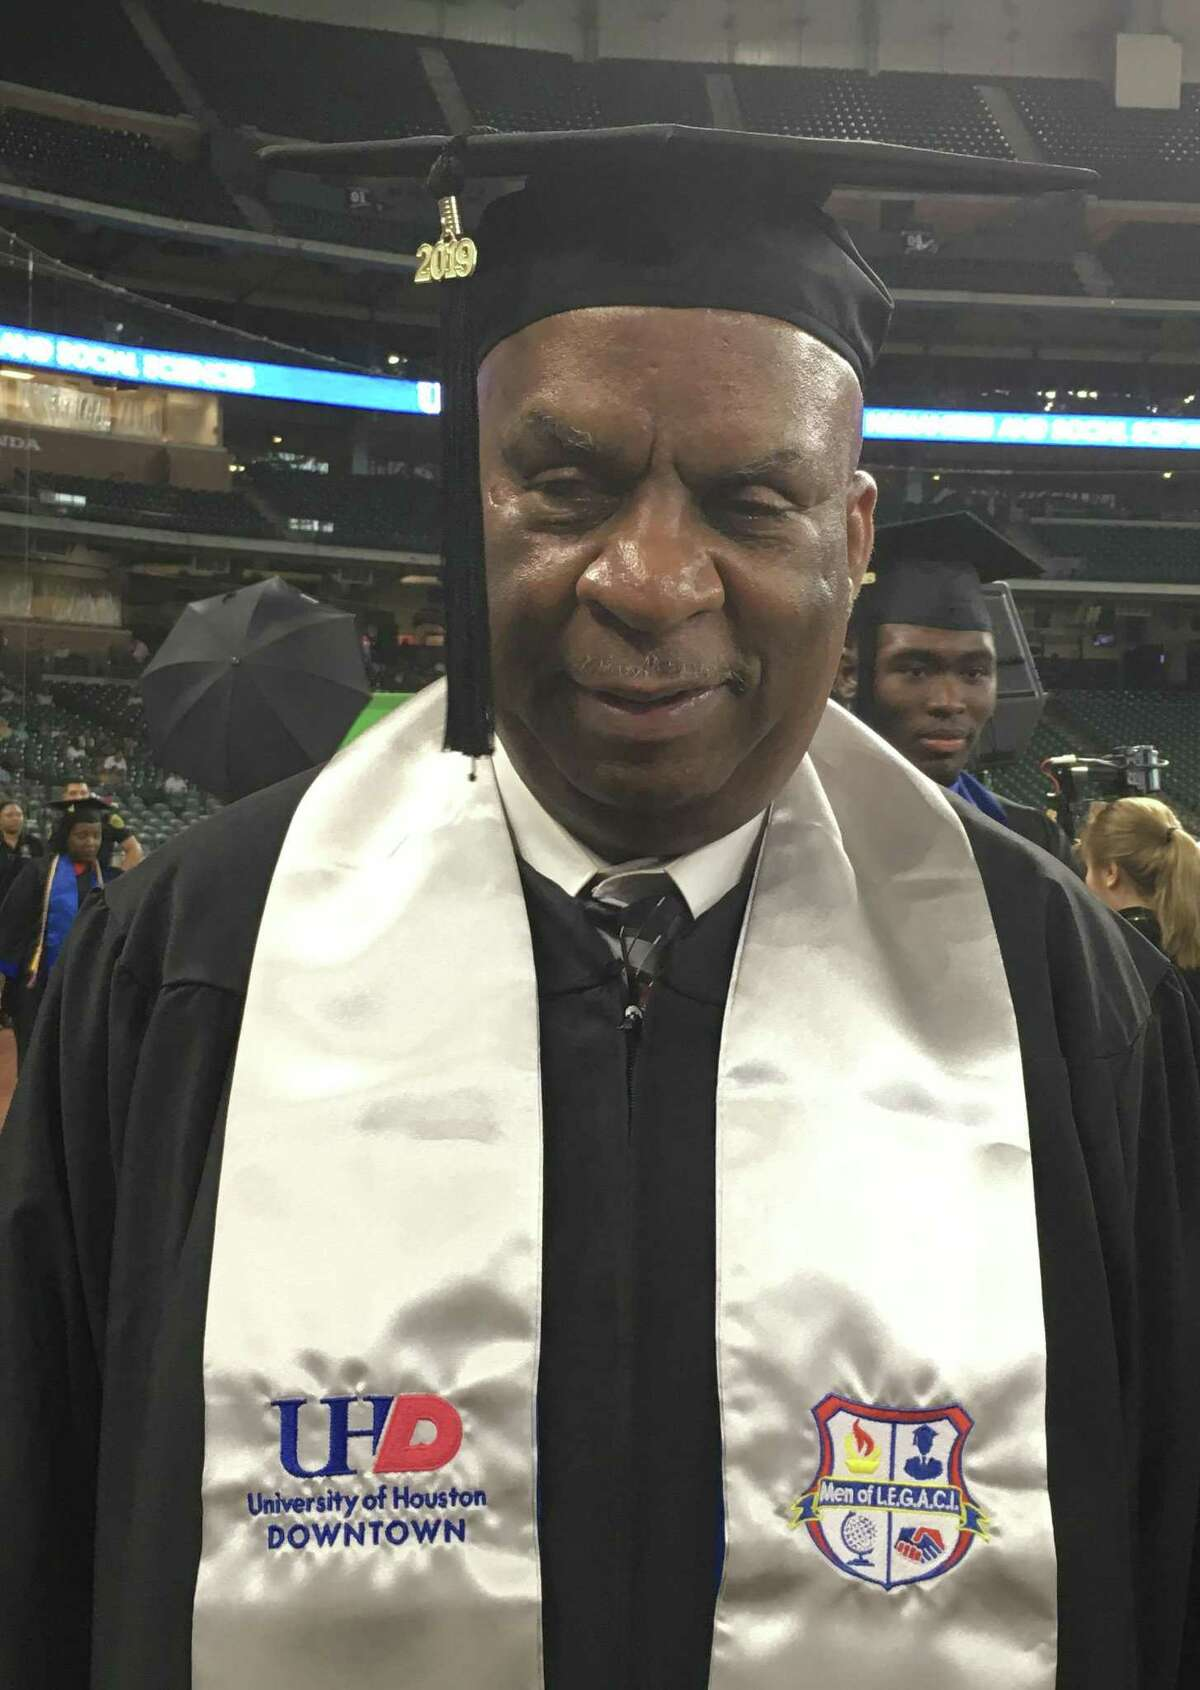 Wayne Lake, 59, is a recent graduate who earned his bachelor's degree in history from the University of Houston-Downtown.